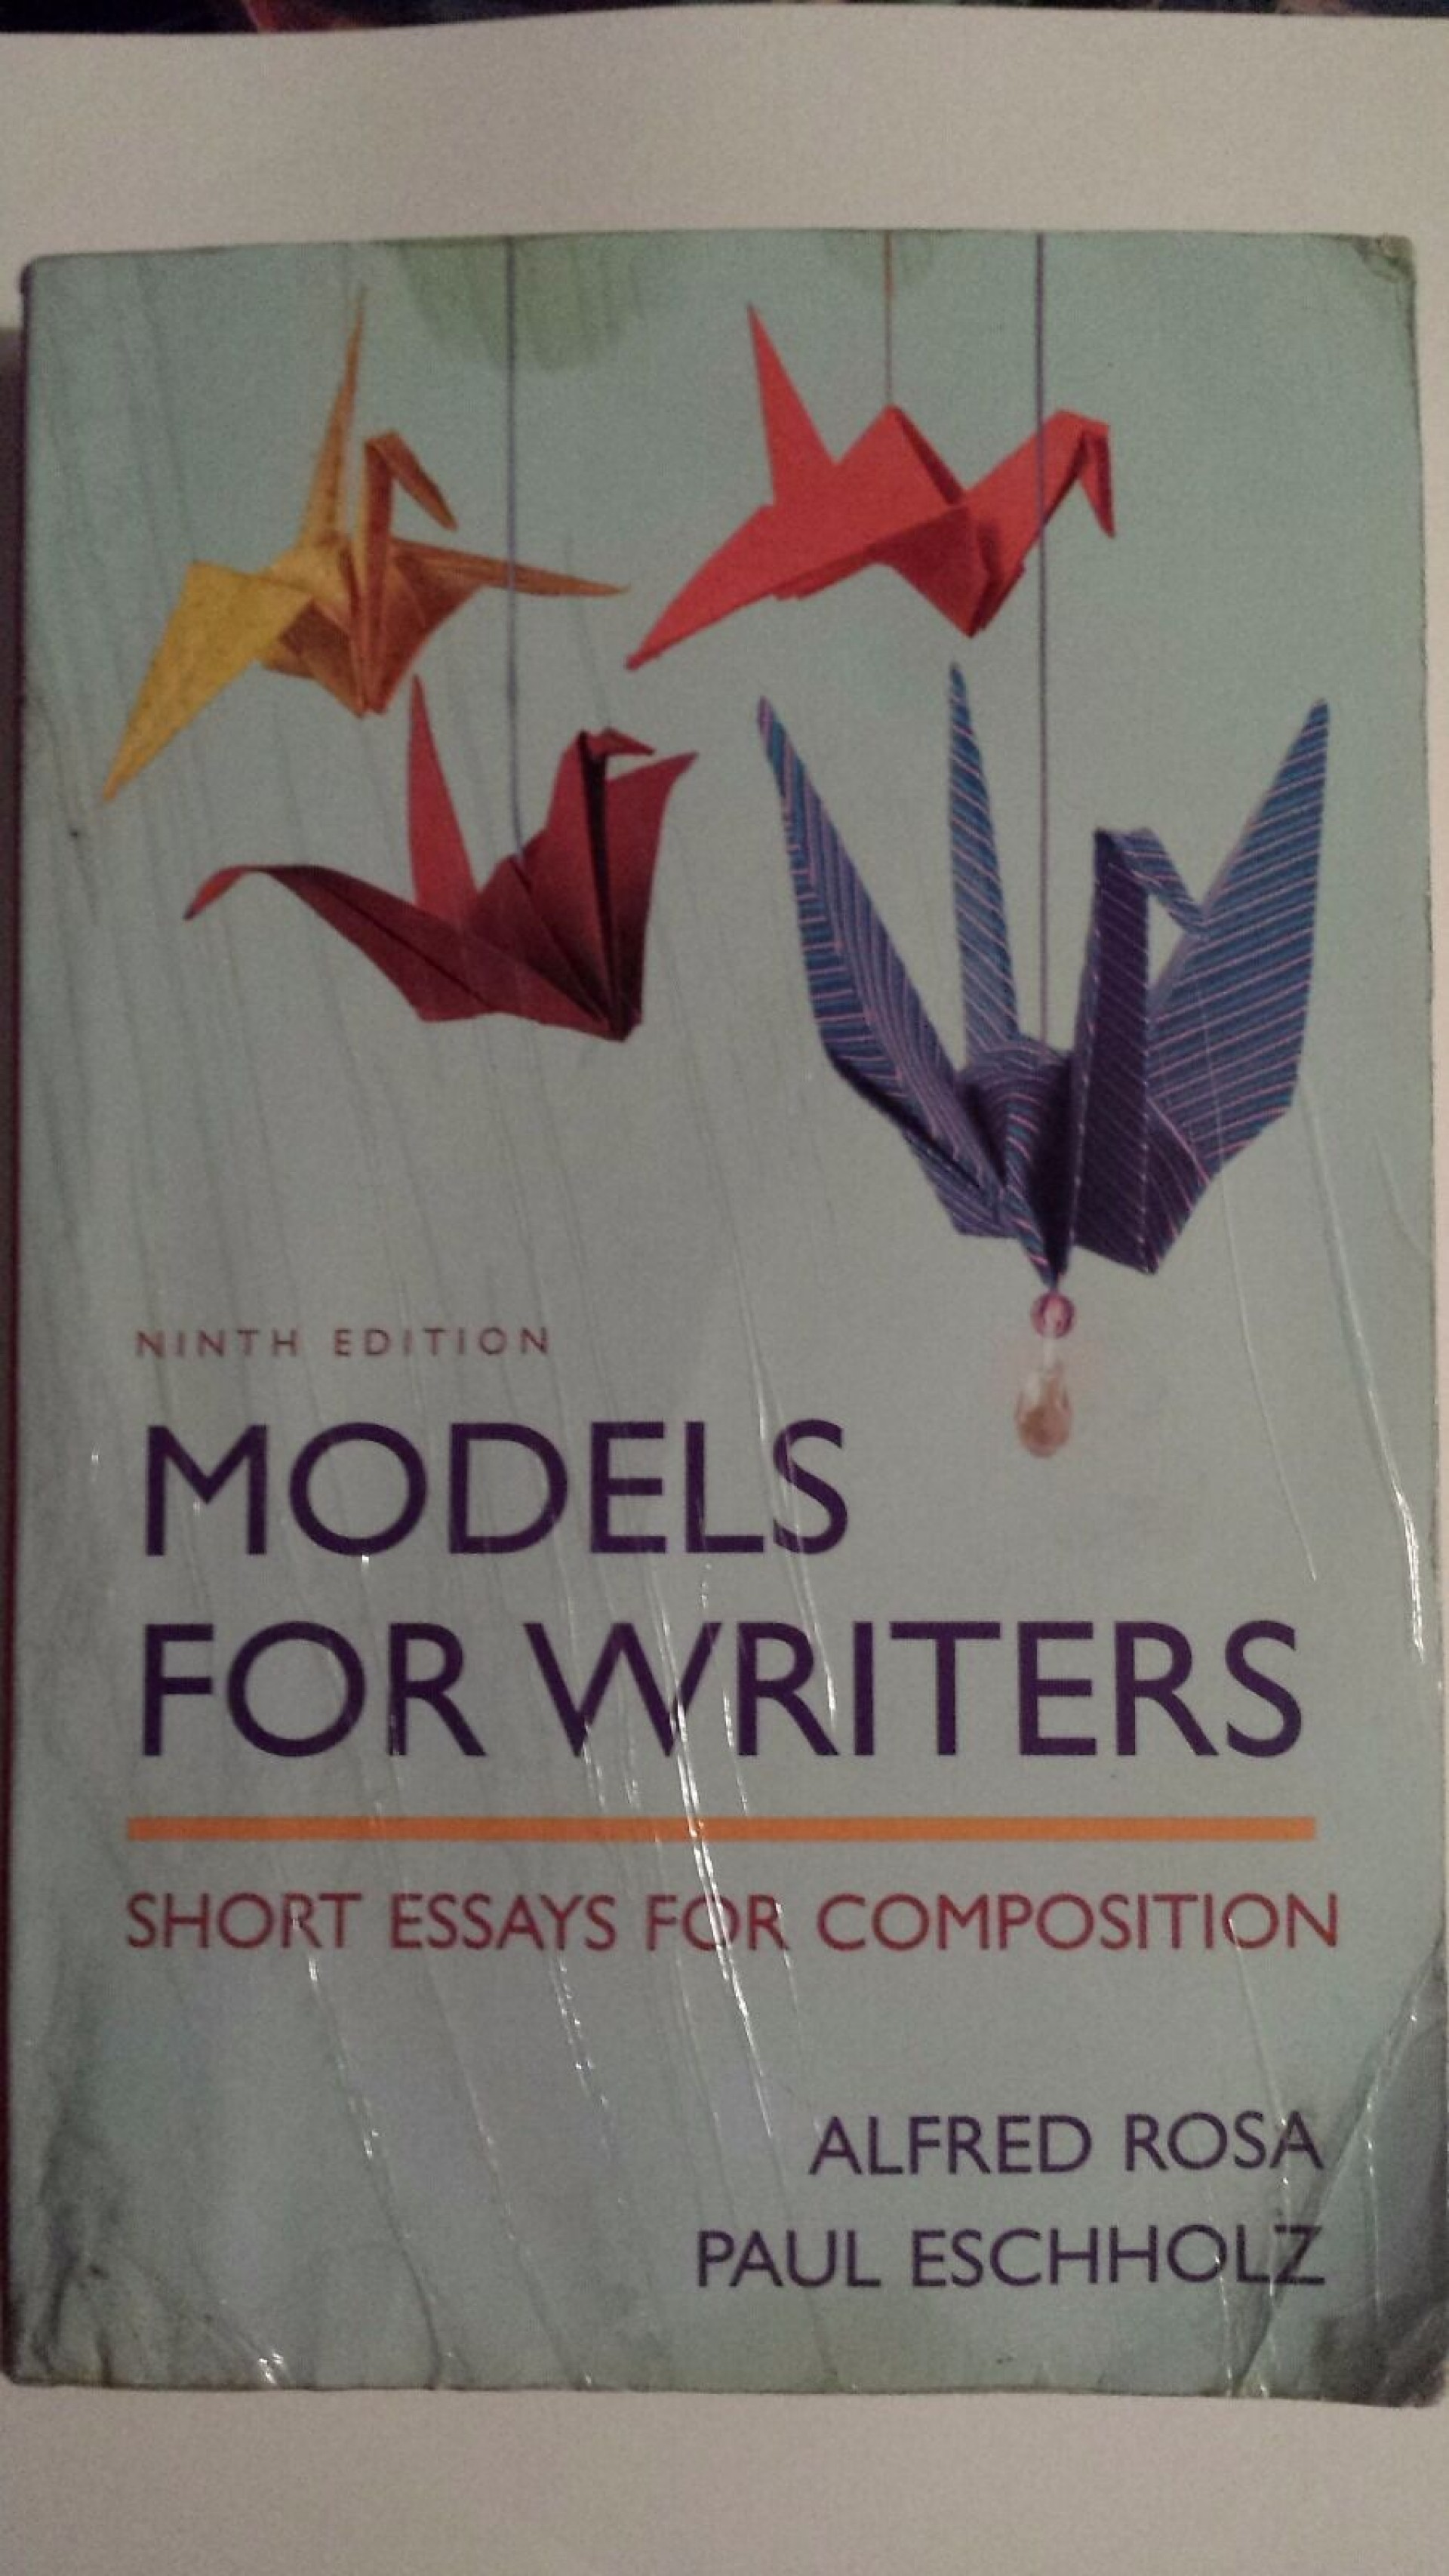 016 S L1600 Models For Writers Short Essays Composition Essay Singular 12th Edition 13th Pdf 1920